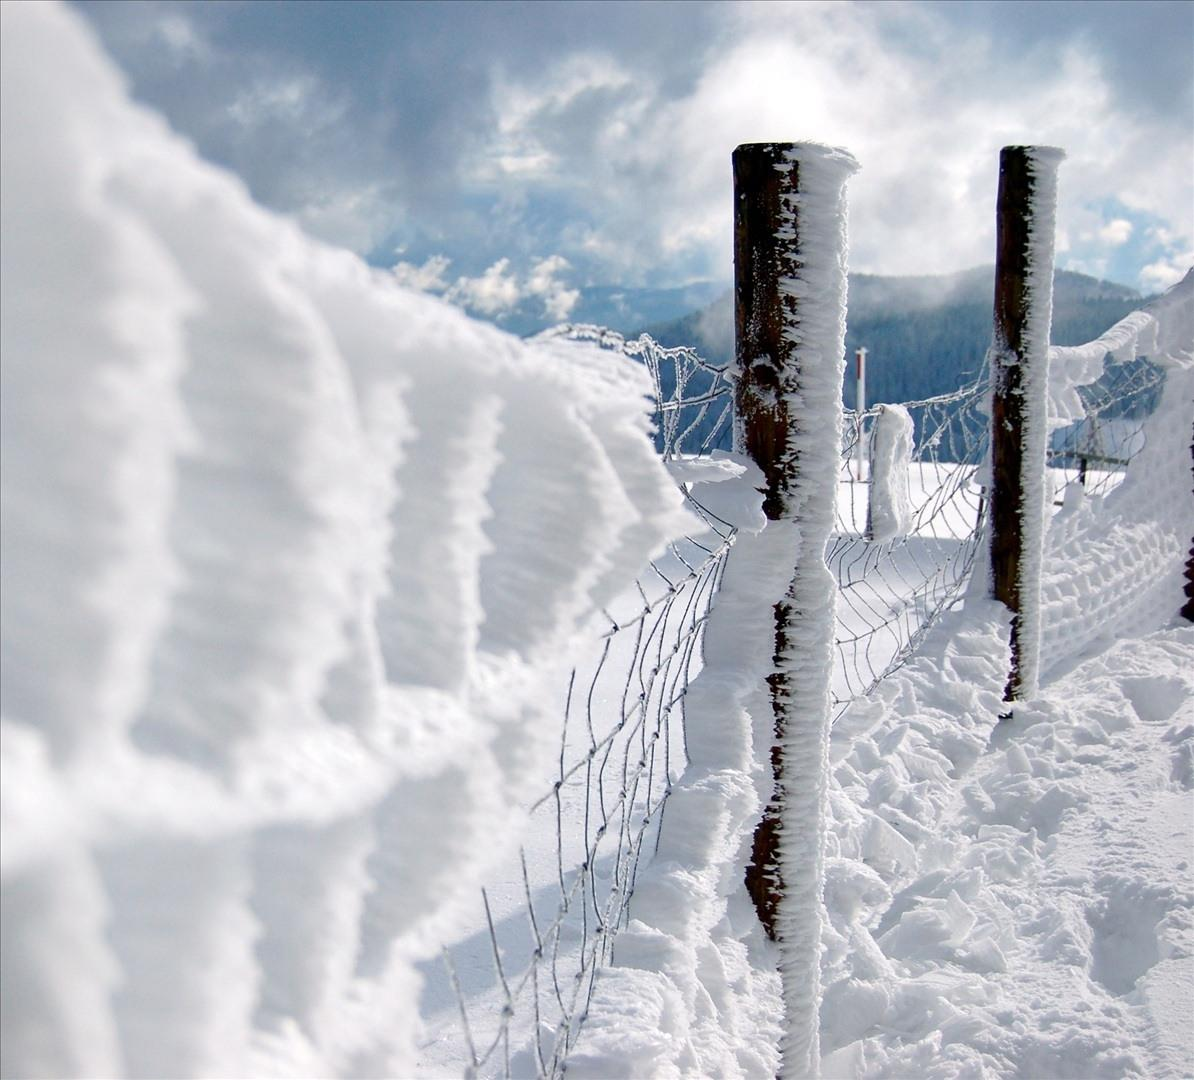 When the weather gets bad, like this image, athletic coaches should not permit their students to perform whichever sport they do. Photo courtesy of www.fotopedia.com.